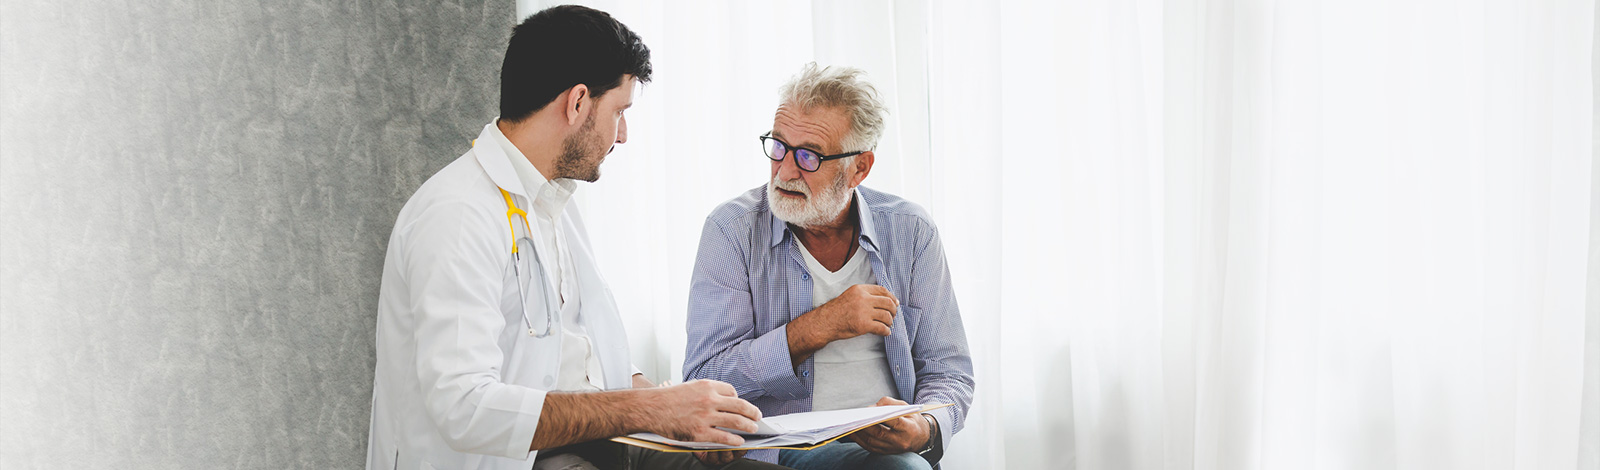 A doctor going over medical records with a patient.